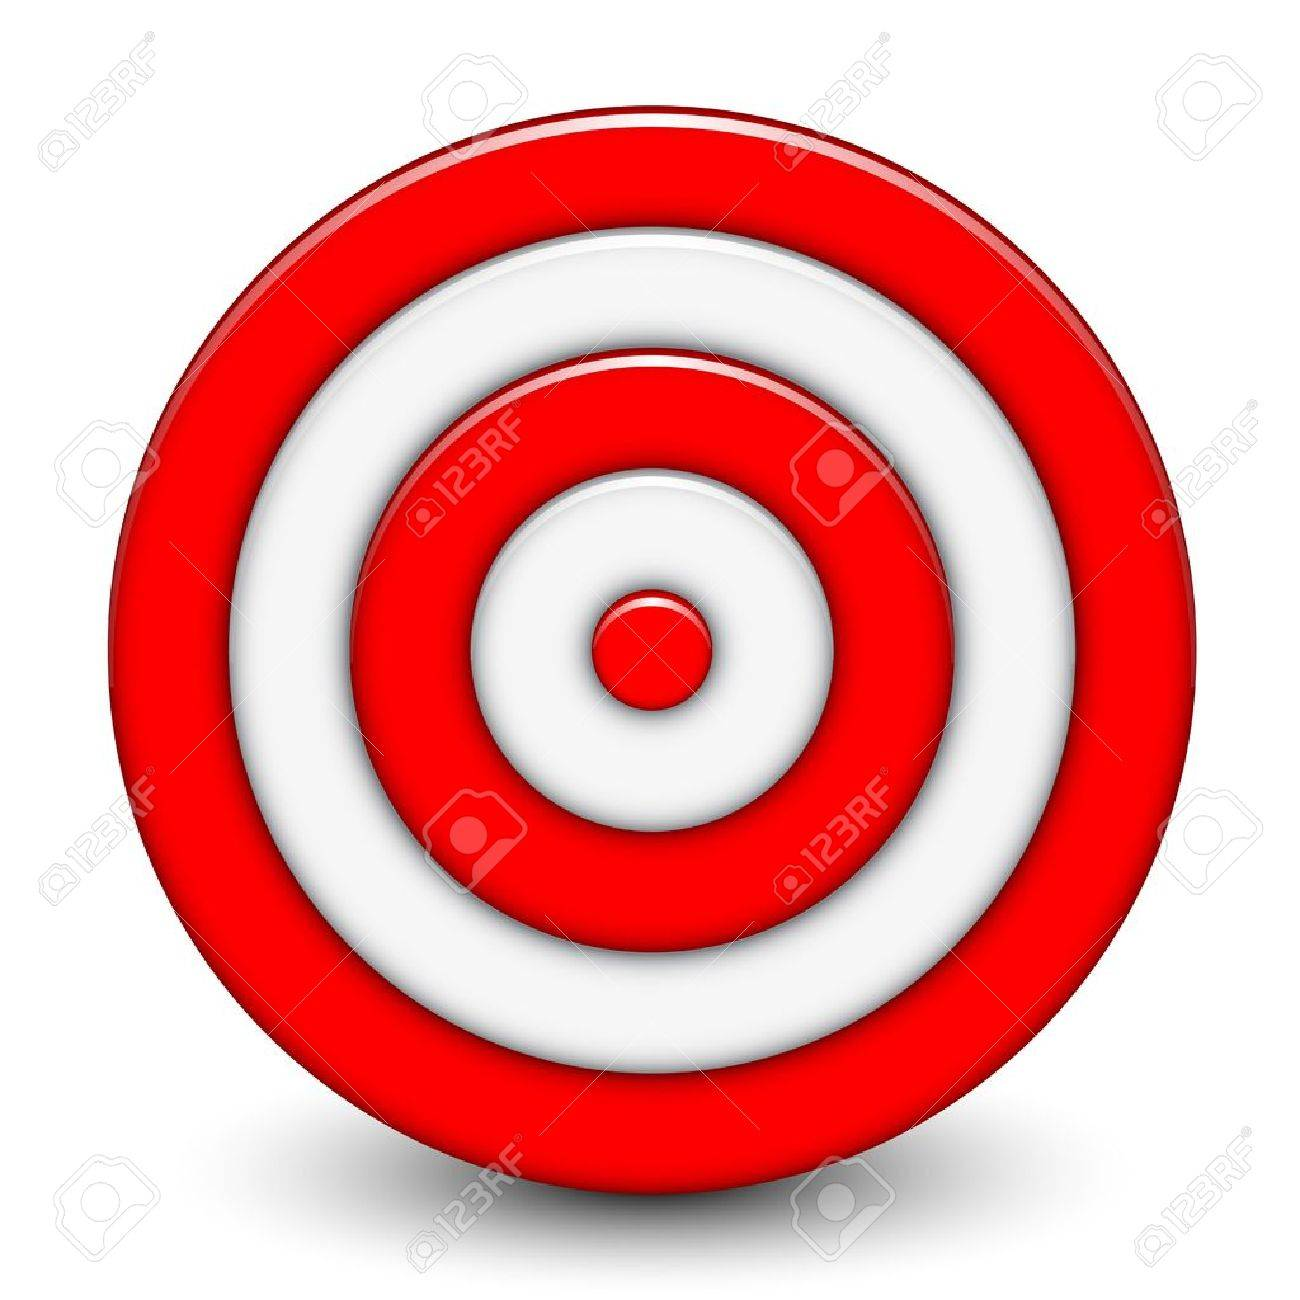 Vector illustration of 3d target royalty free cliparts vectors vector illustration of 3d target stock vector 15210767 buycottarizona Image collections